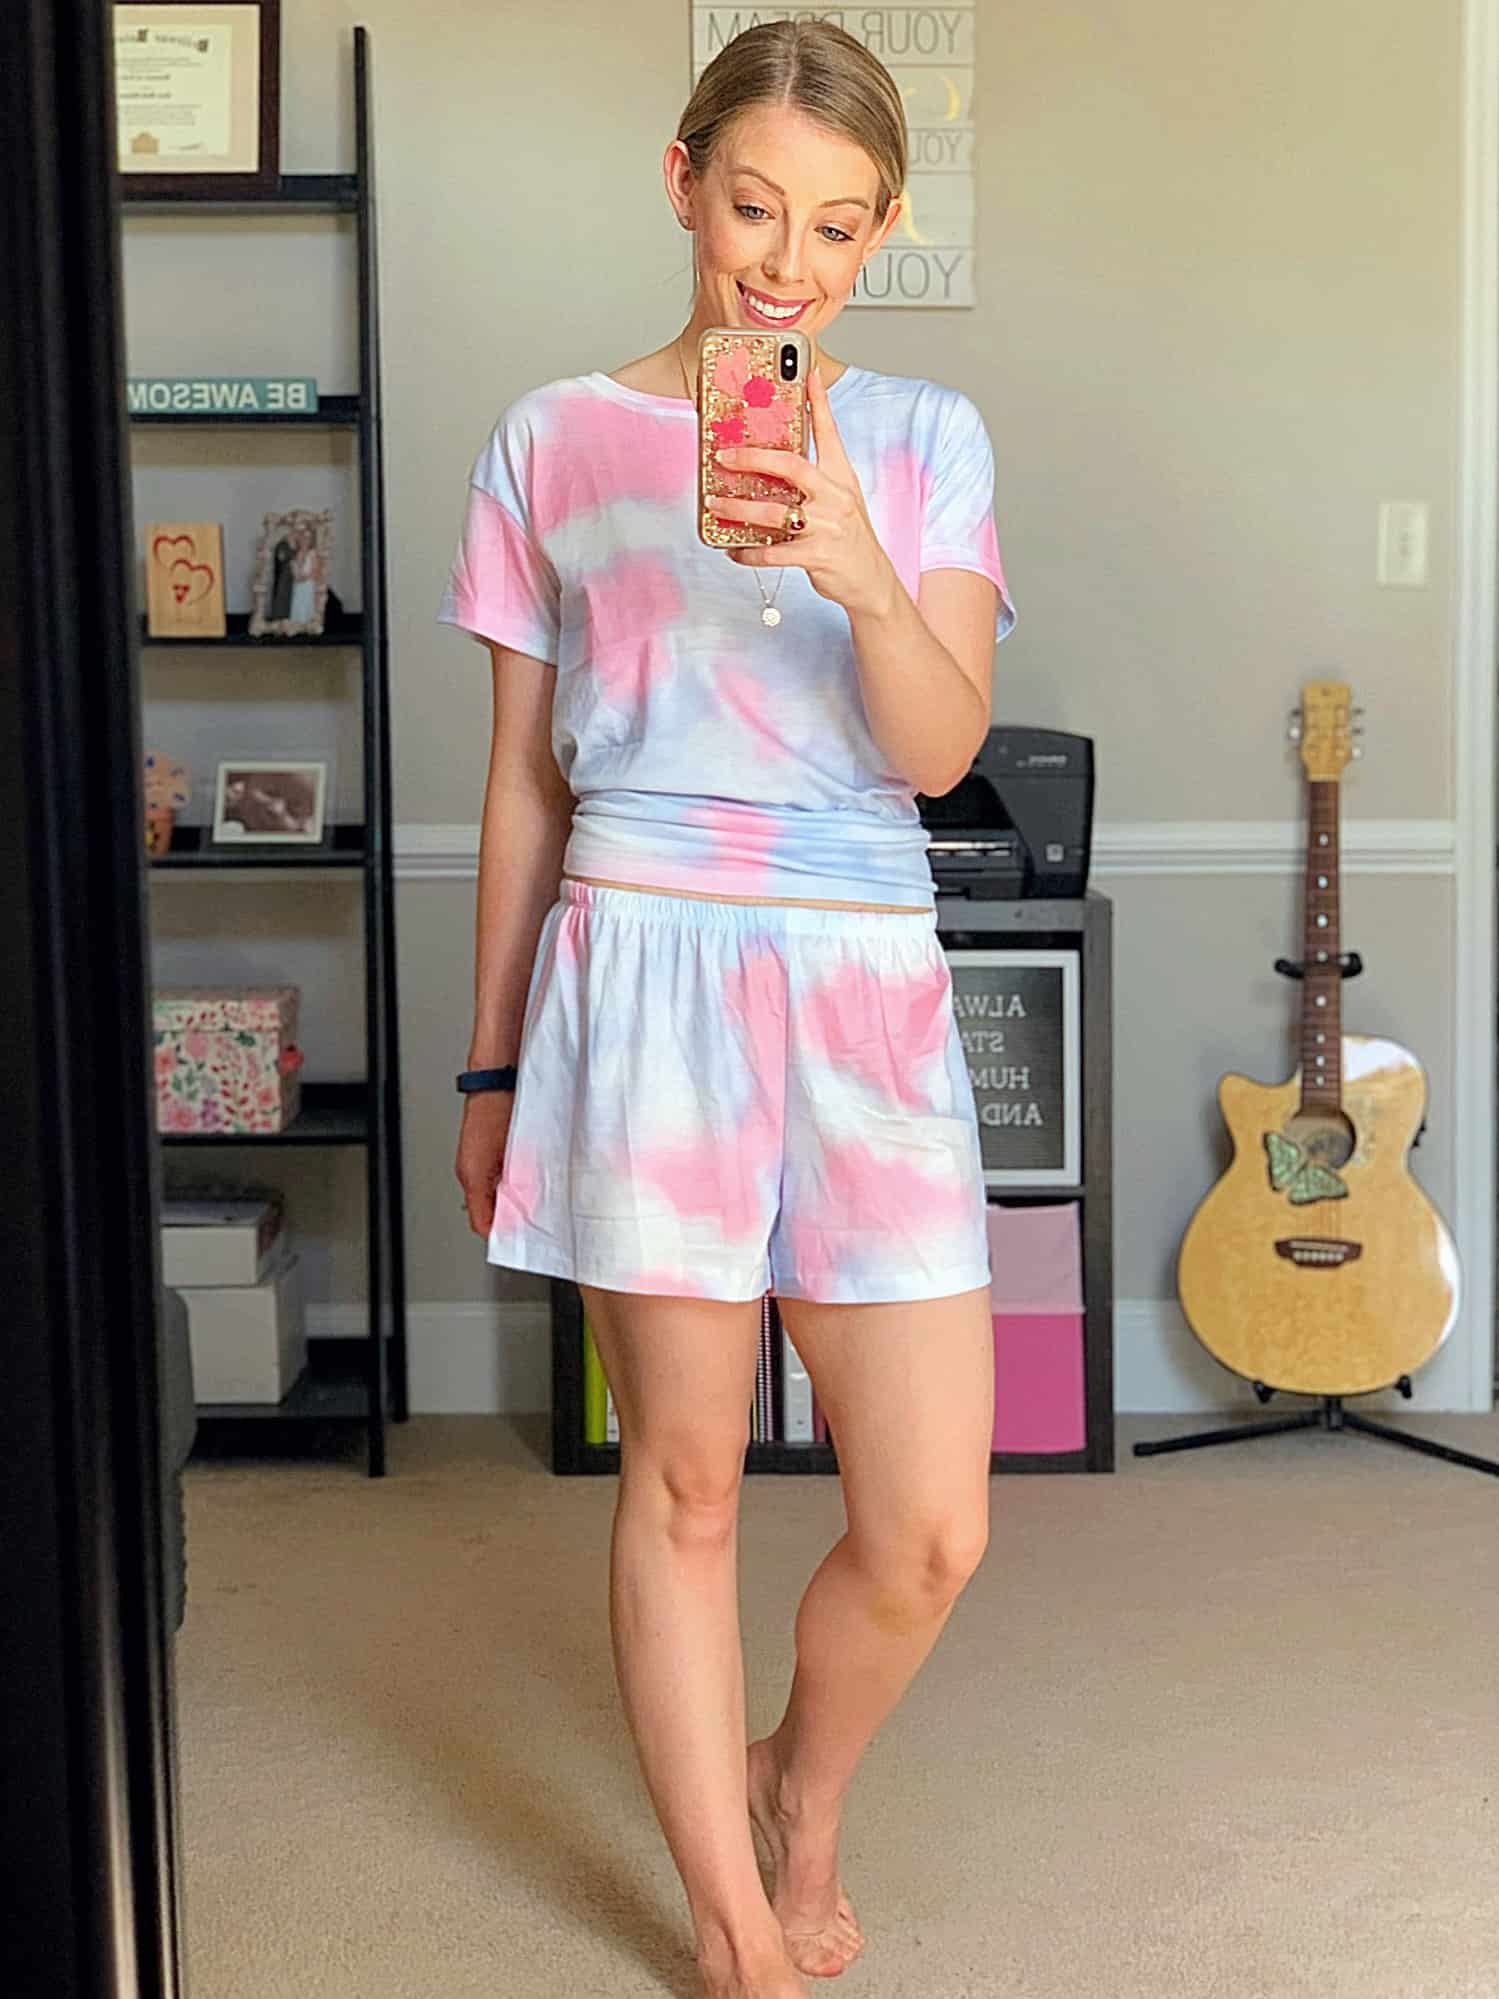 Check out my latest Amazon Haul with Cute Tie Dye Outfits and tie dye finds under $25! I'm sharing my favorite tie dye tanks, tie dye tees, tie dye dresses, and tie dye pajamas! #tiedye #amazonhaul #amazonfashion #tryonhaul